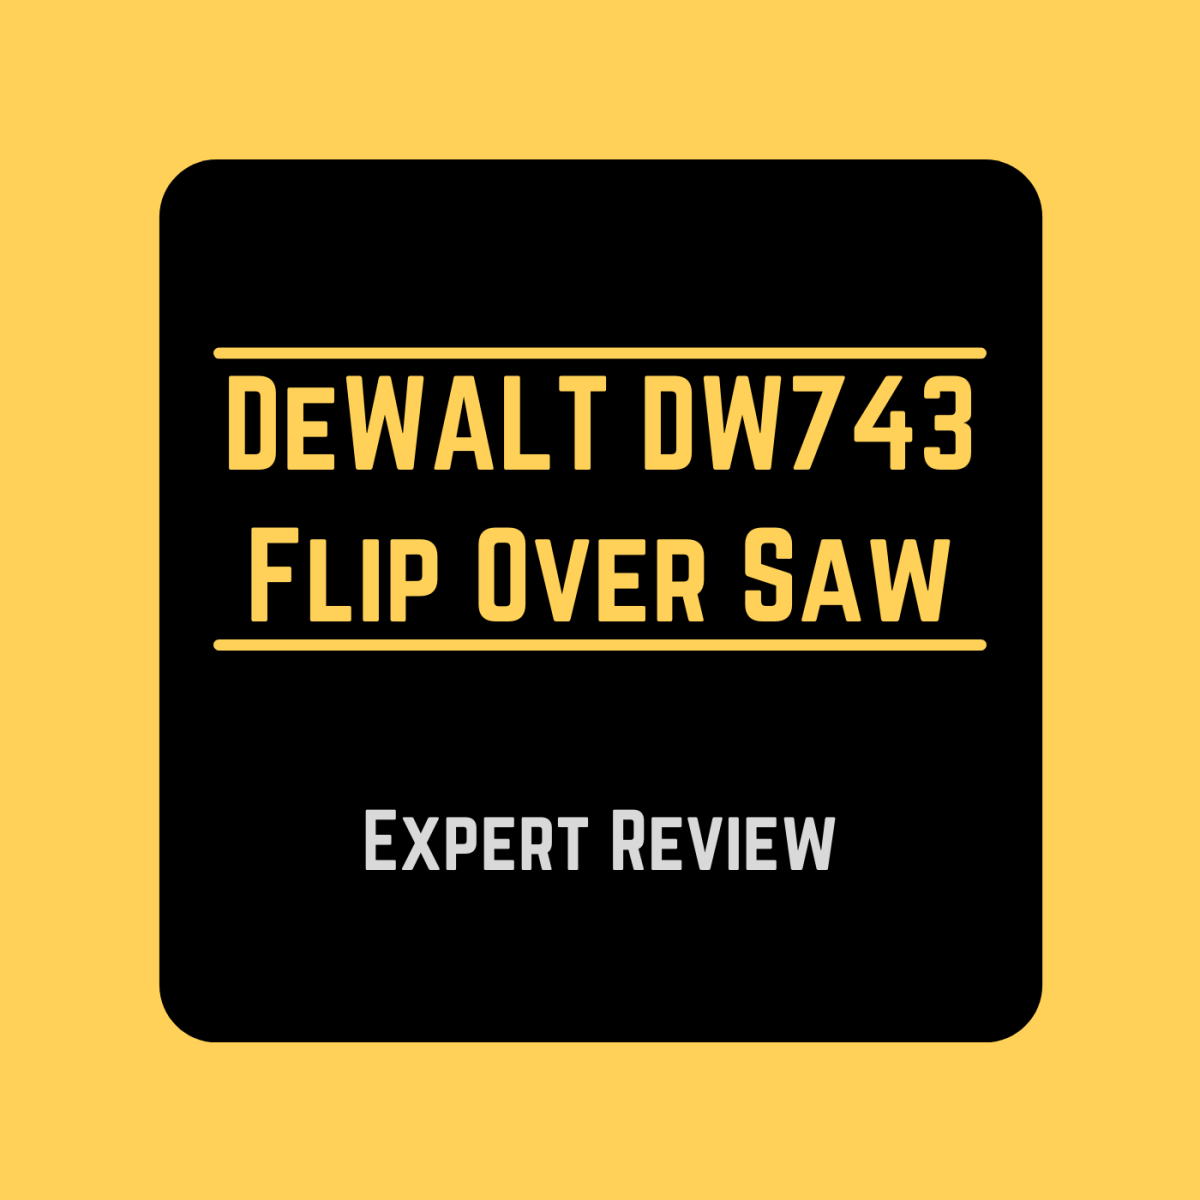 Review of the DW743 Flip Over Saw From DeWALT